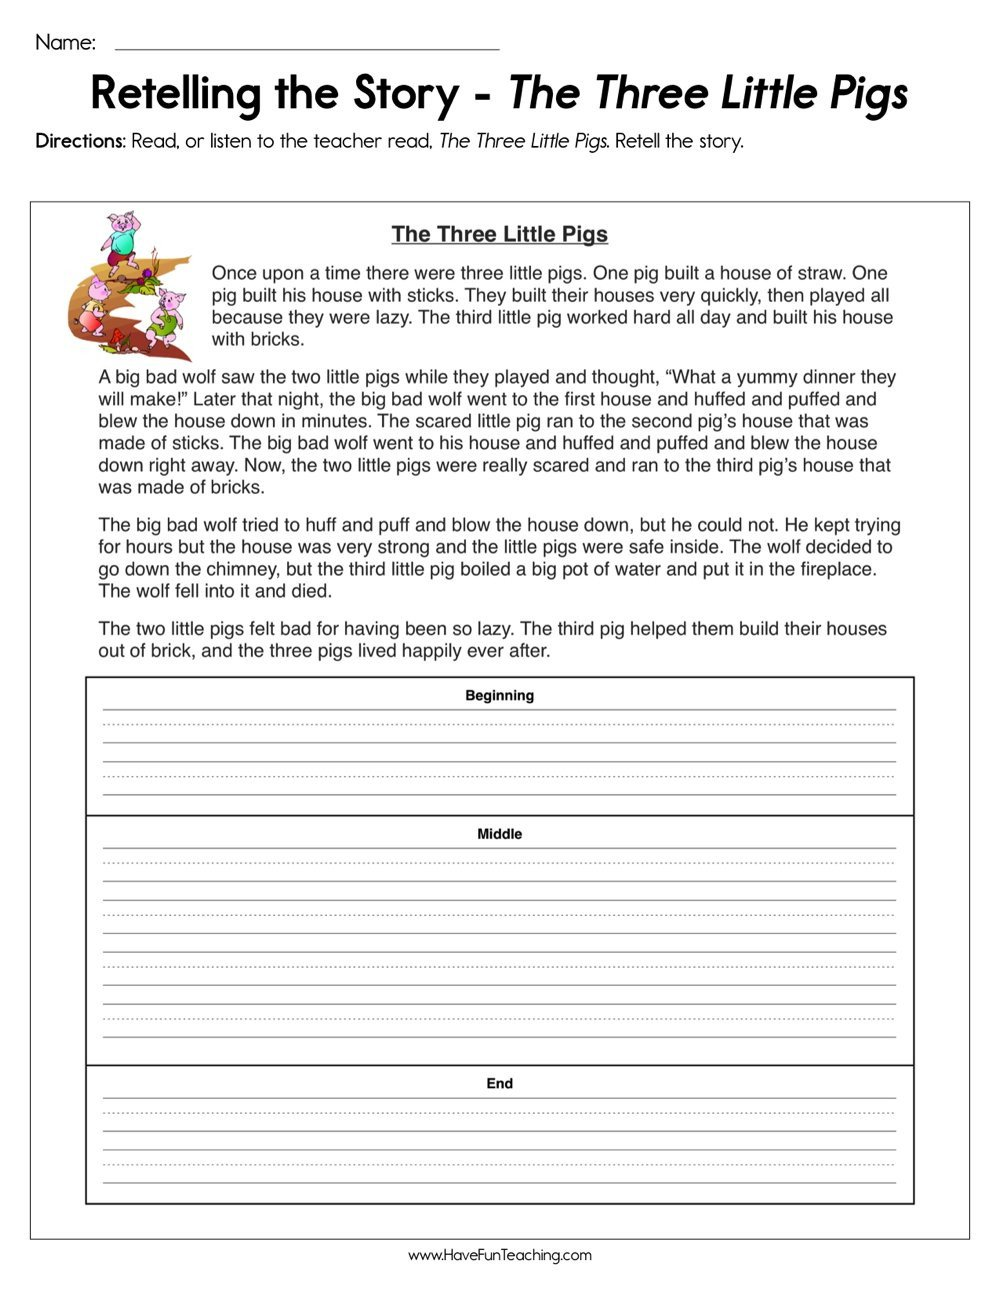 retelling the story the three little pigs worksheet